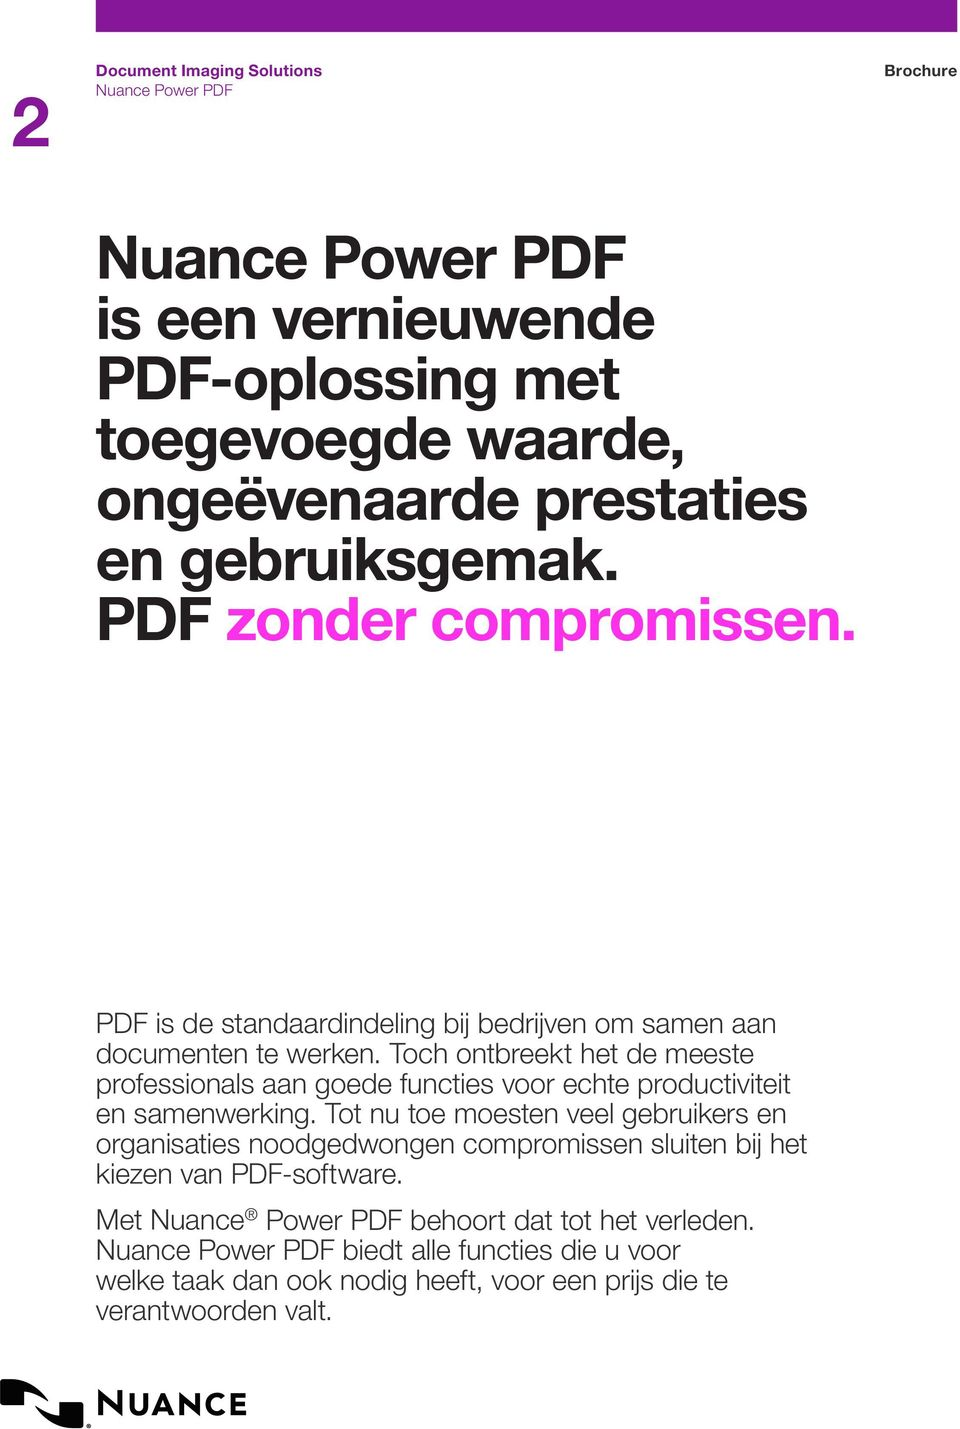 compare nuance power pdf and adobe